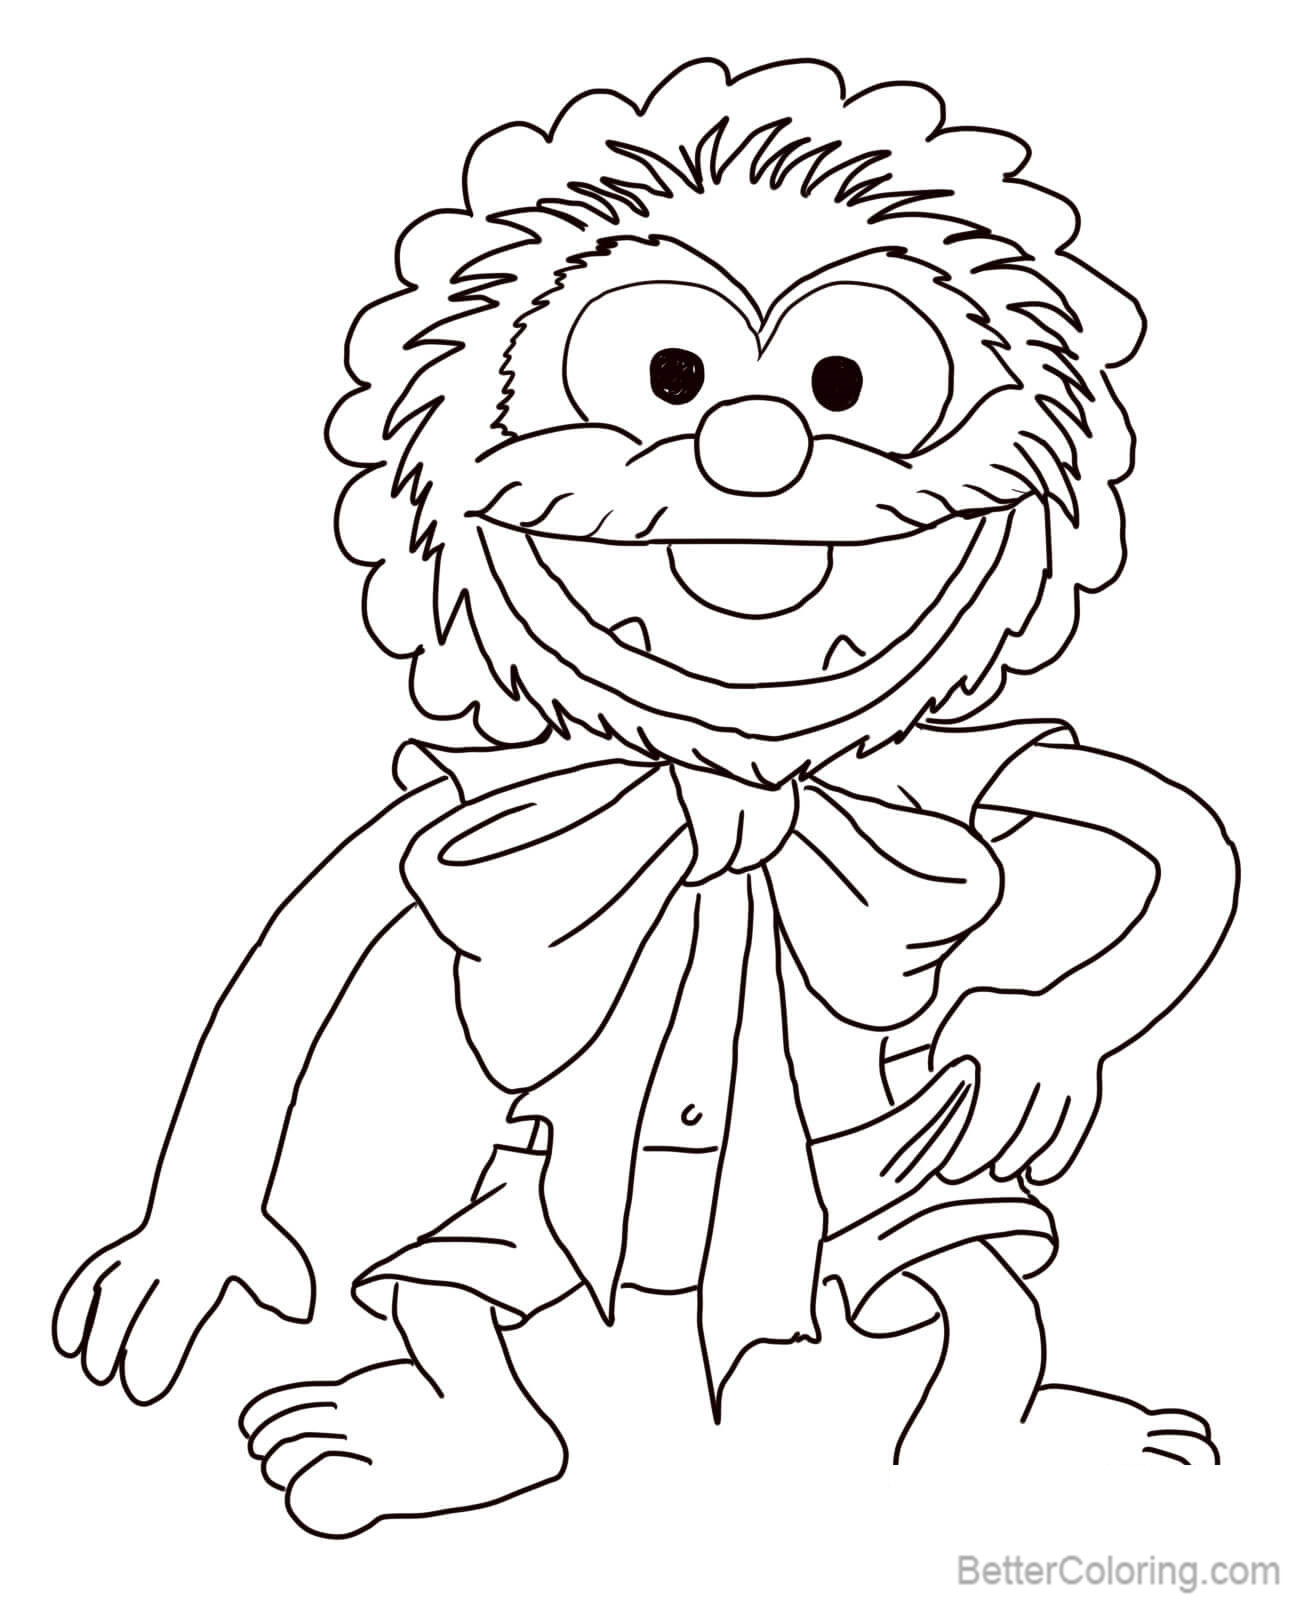 coloring pages babies - muppet babies coloring pages baby animals free printable